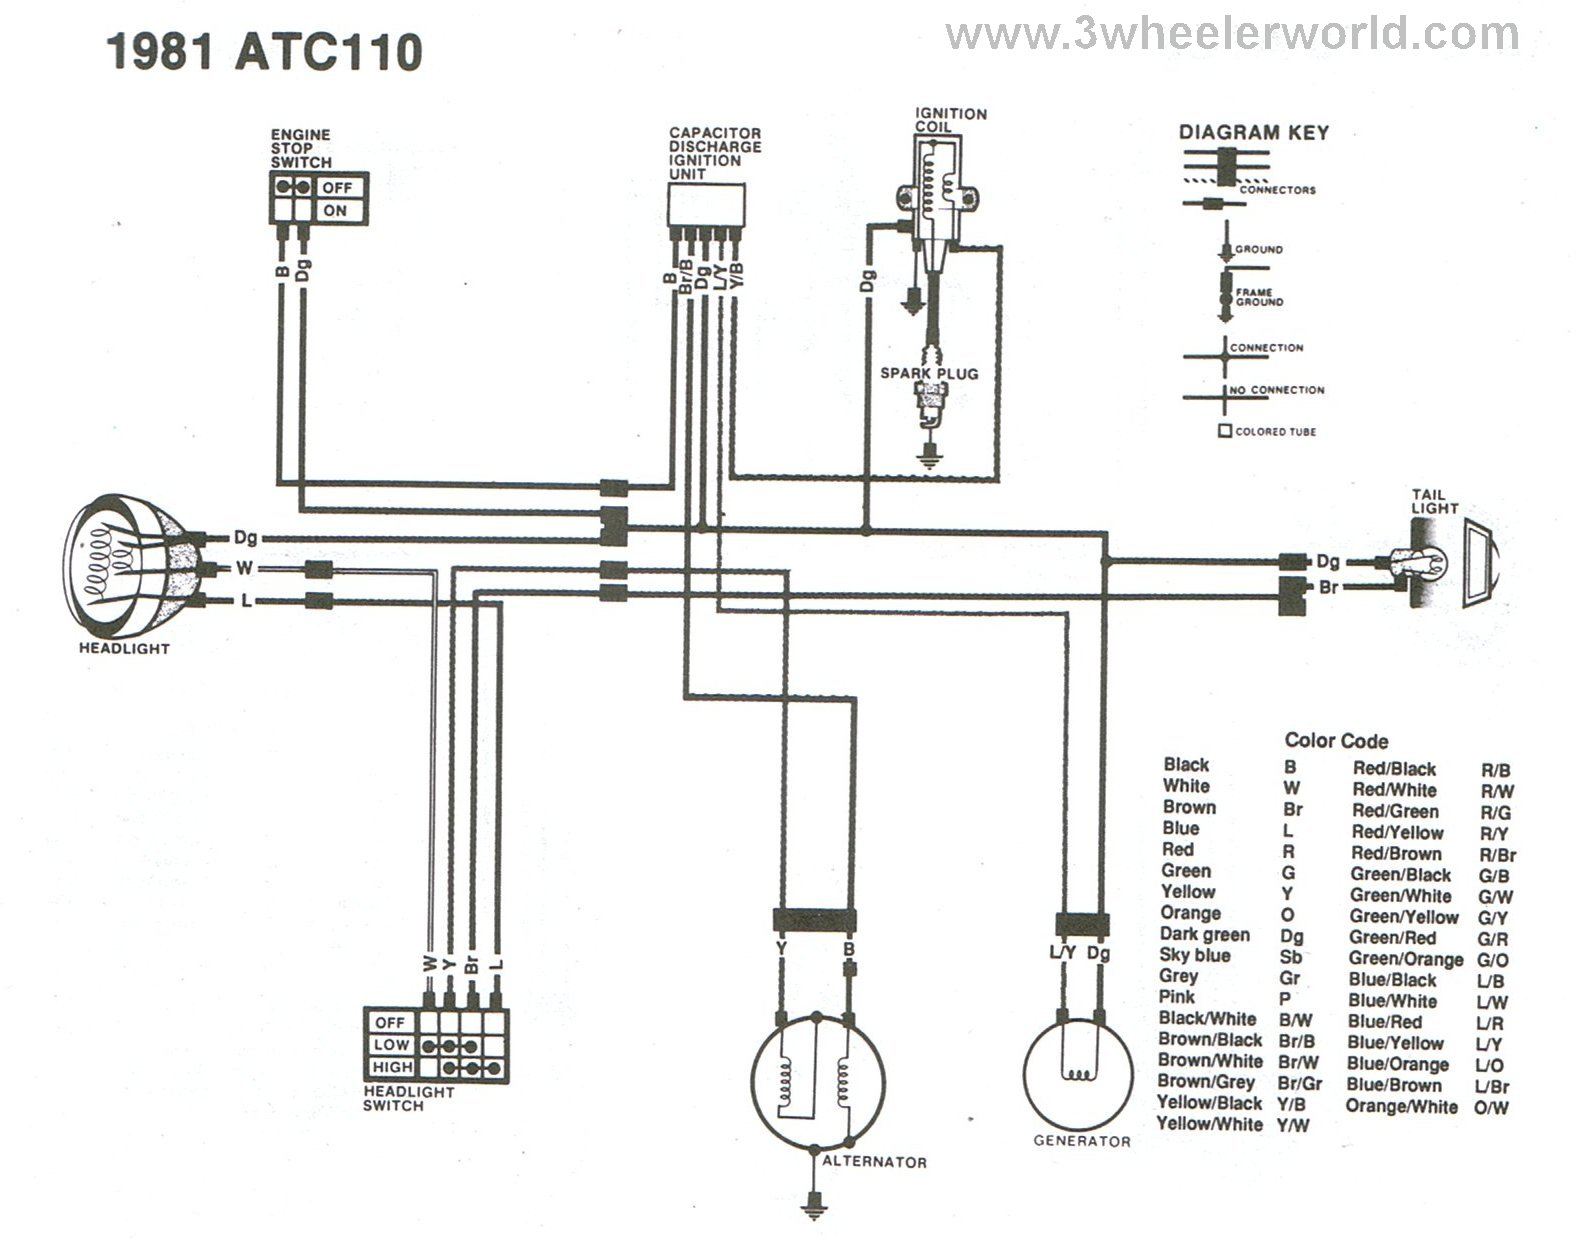 Atc 125 Wiring Diagram | Wiring Diagram Official Honda M Wiring Diagram on honda 185s wiring diagram, honda 200m wiring diagram, honda 250r wiring diagram, honda 200s wiring diagram,